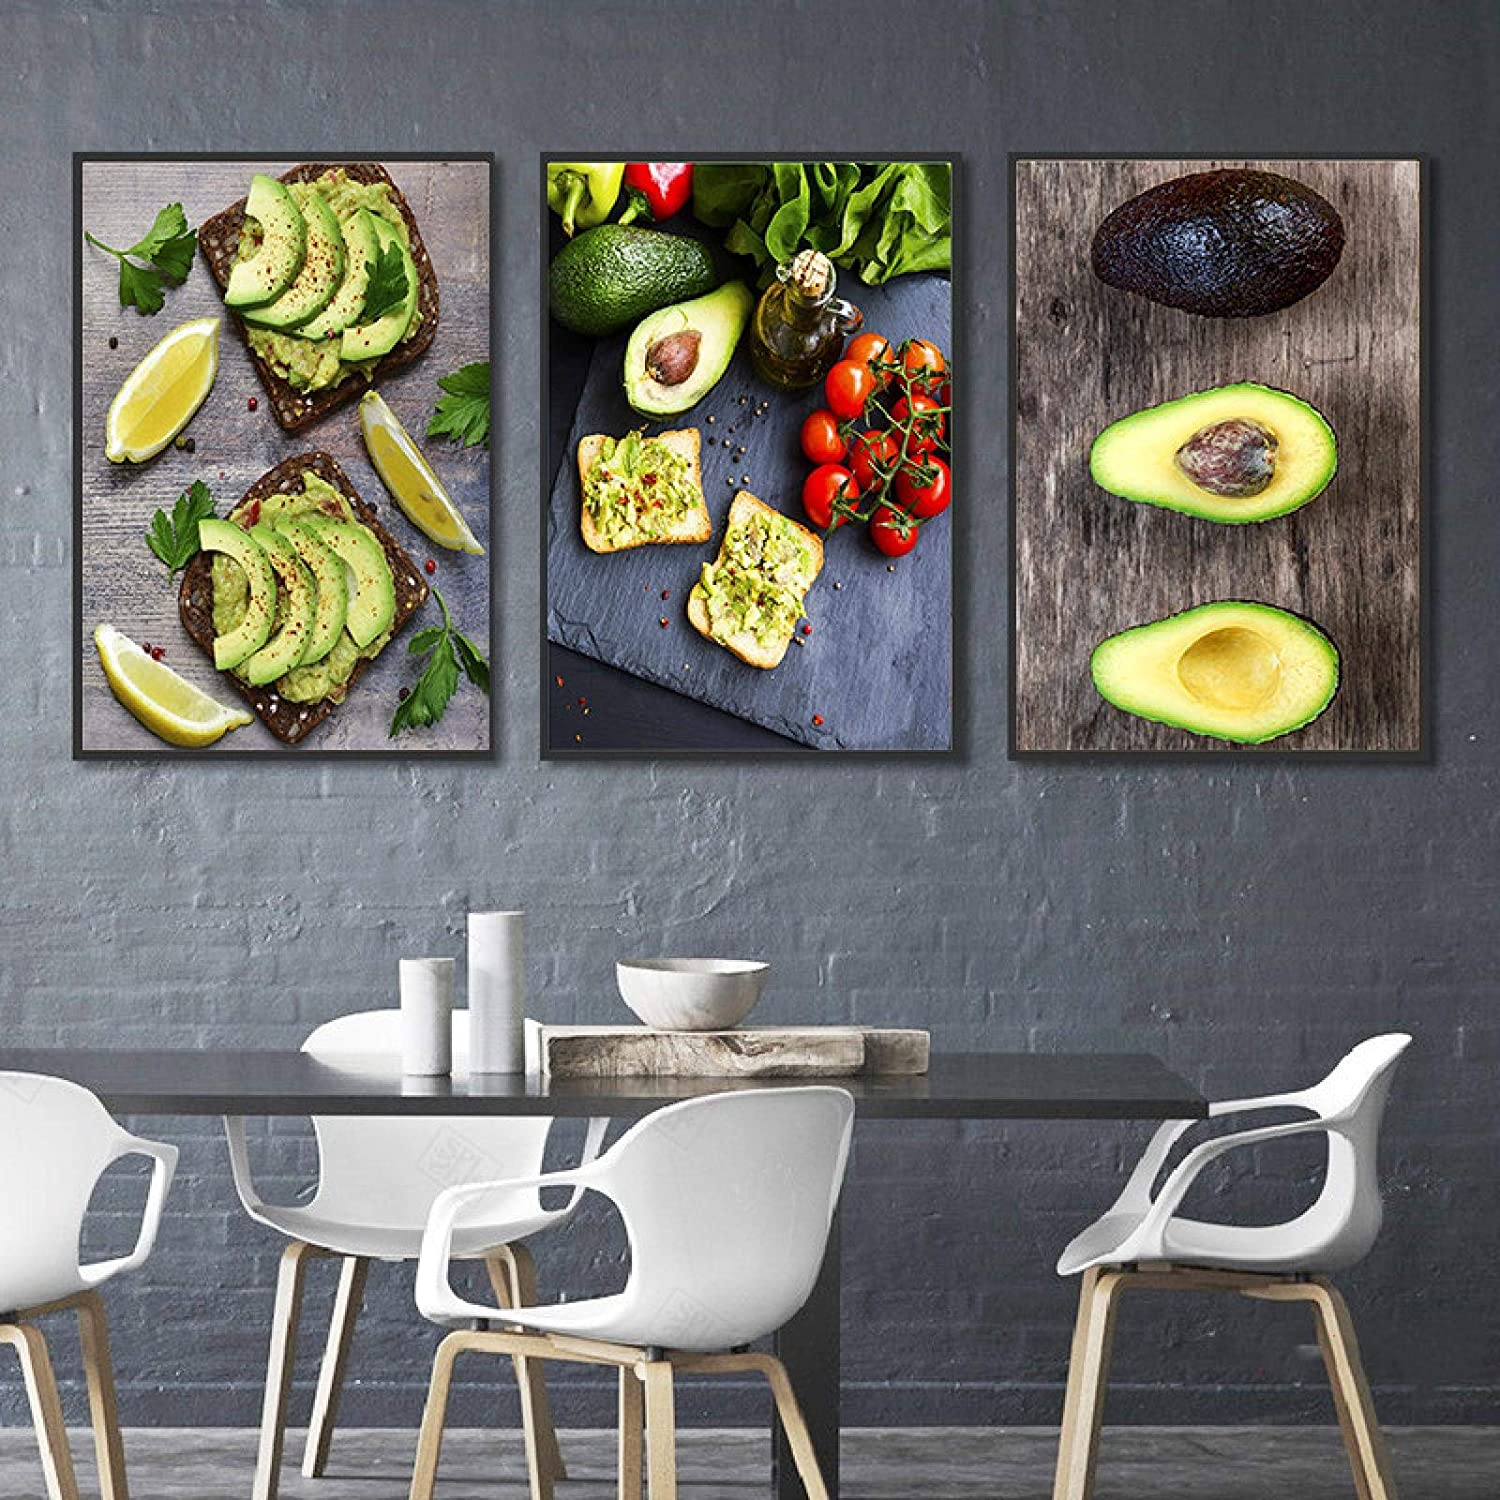 YQLKC San Francisco Mall Art Nordic Decorative Poster Avocado Fig Under blast sales Fruit with Toasts